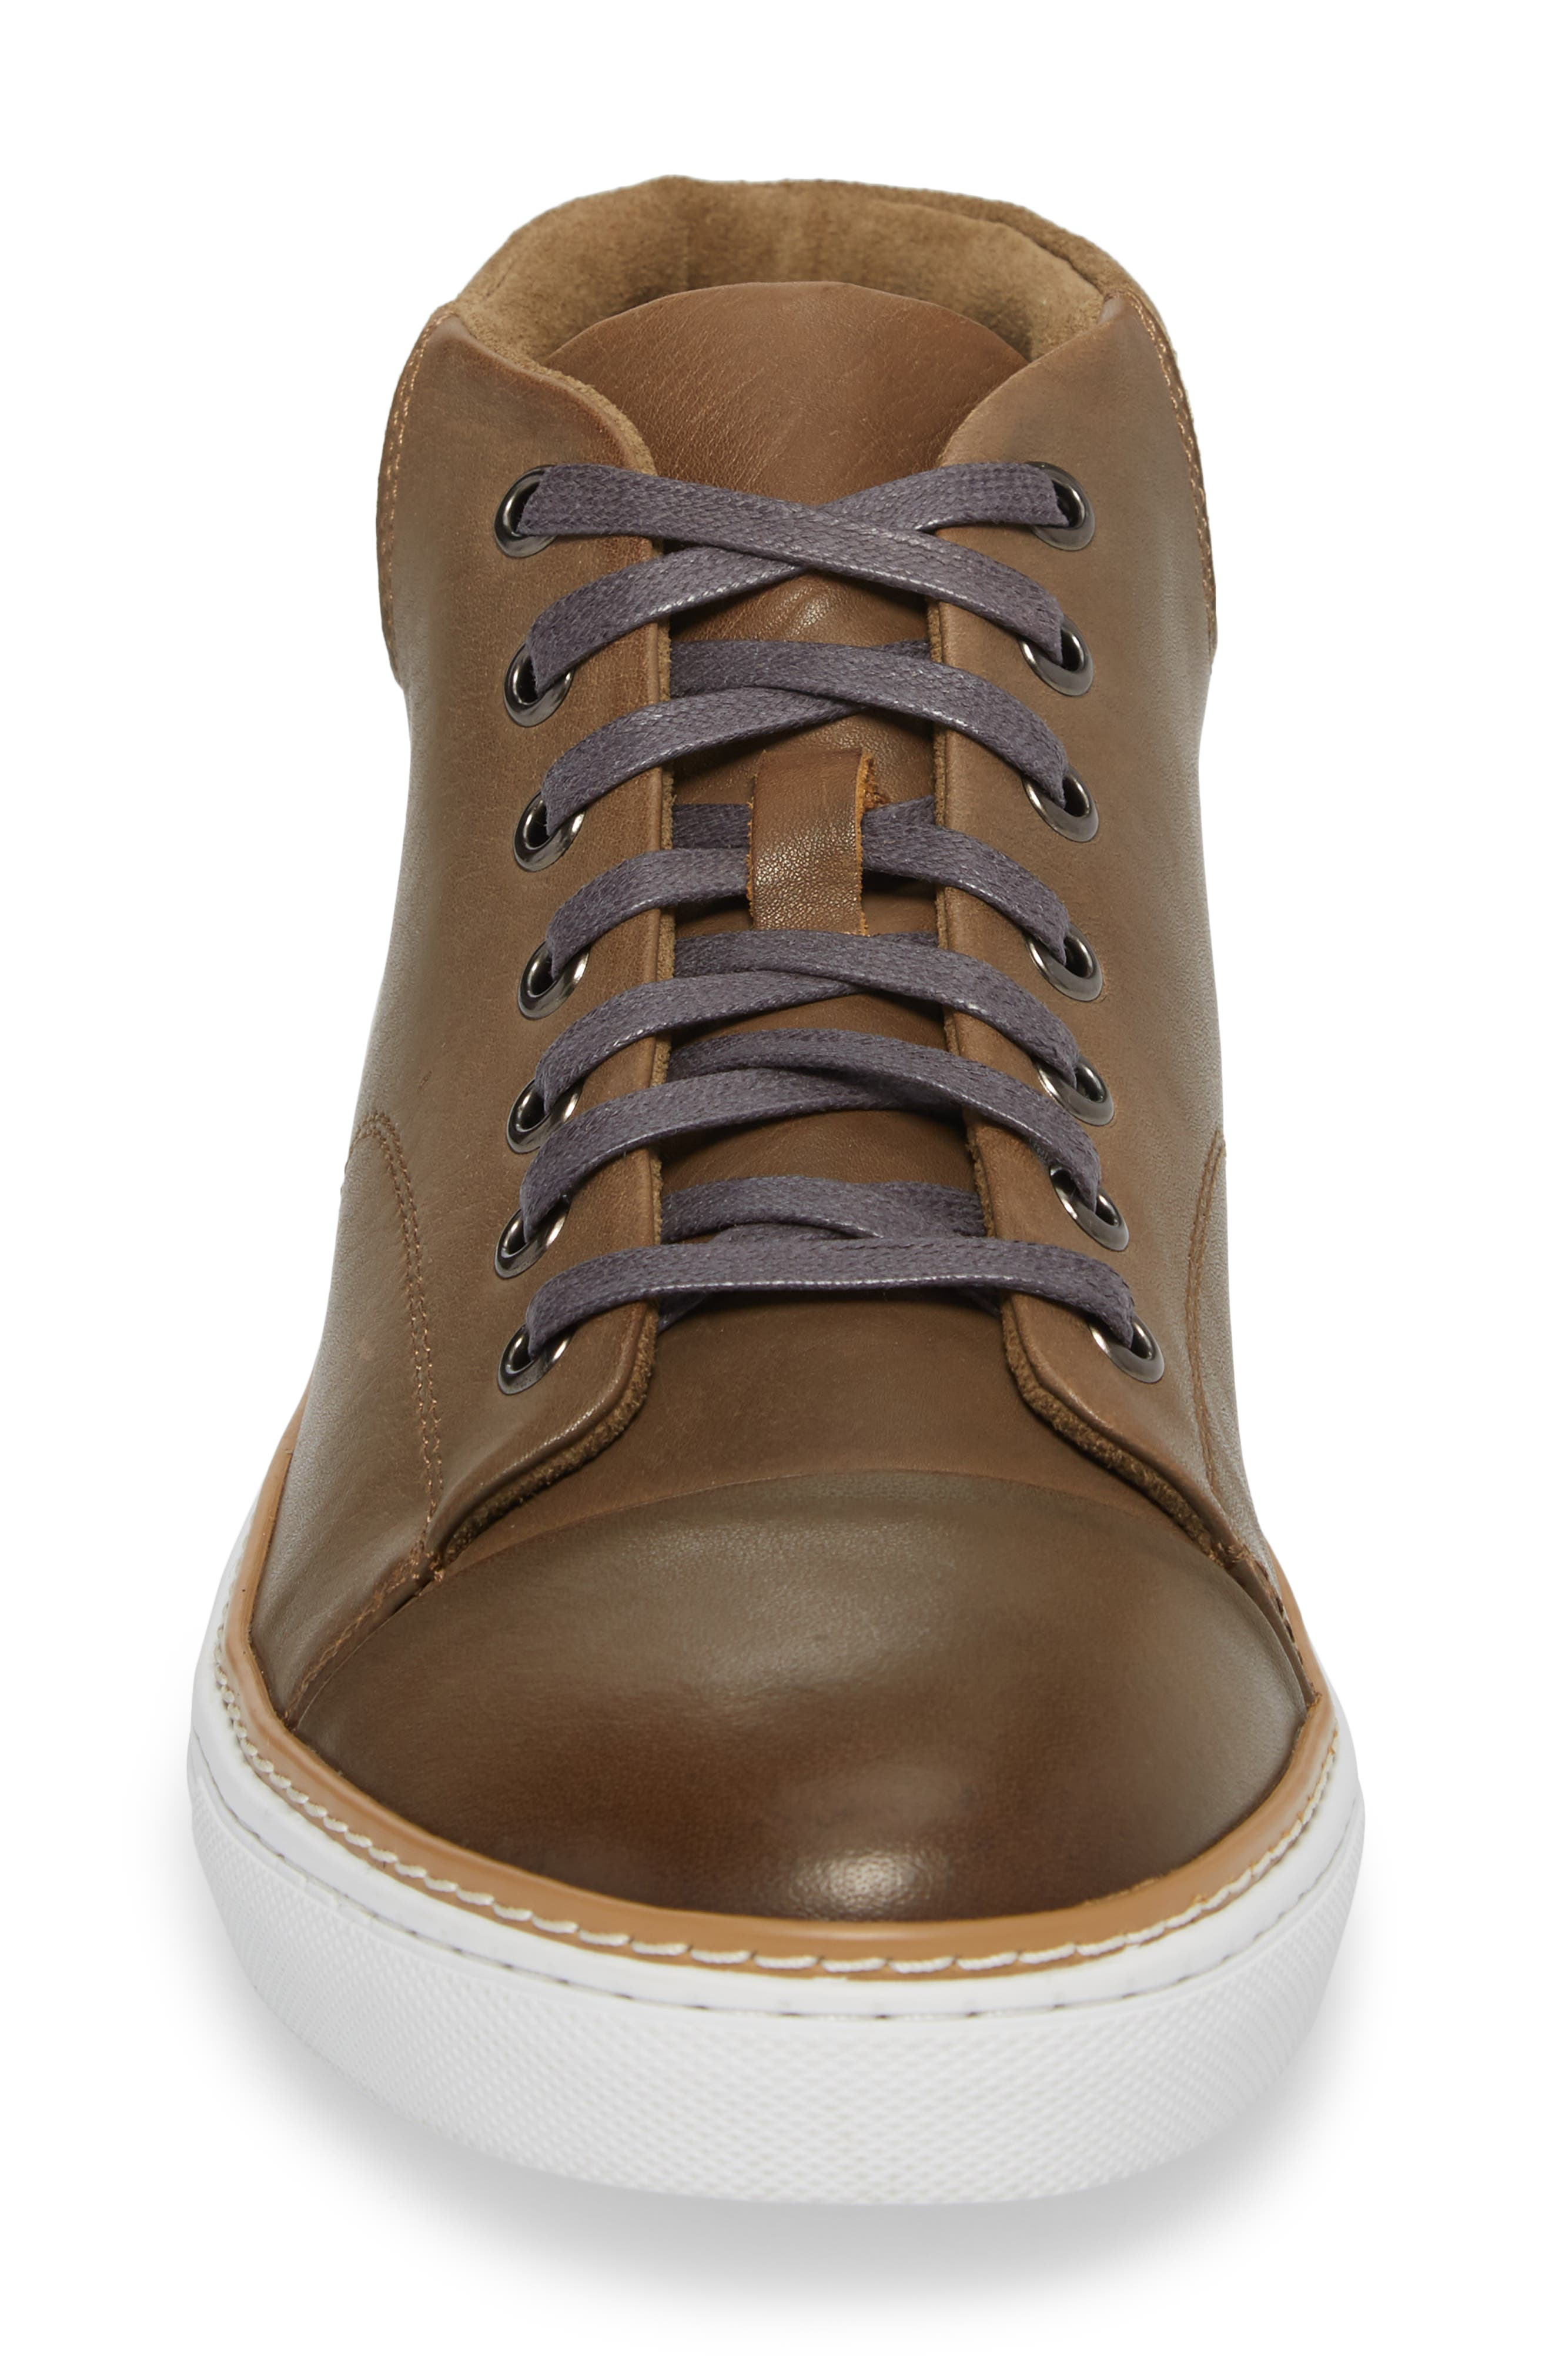 Grove Sneaker,                             Alternate thumbnail 4, color,                             Tan Leather